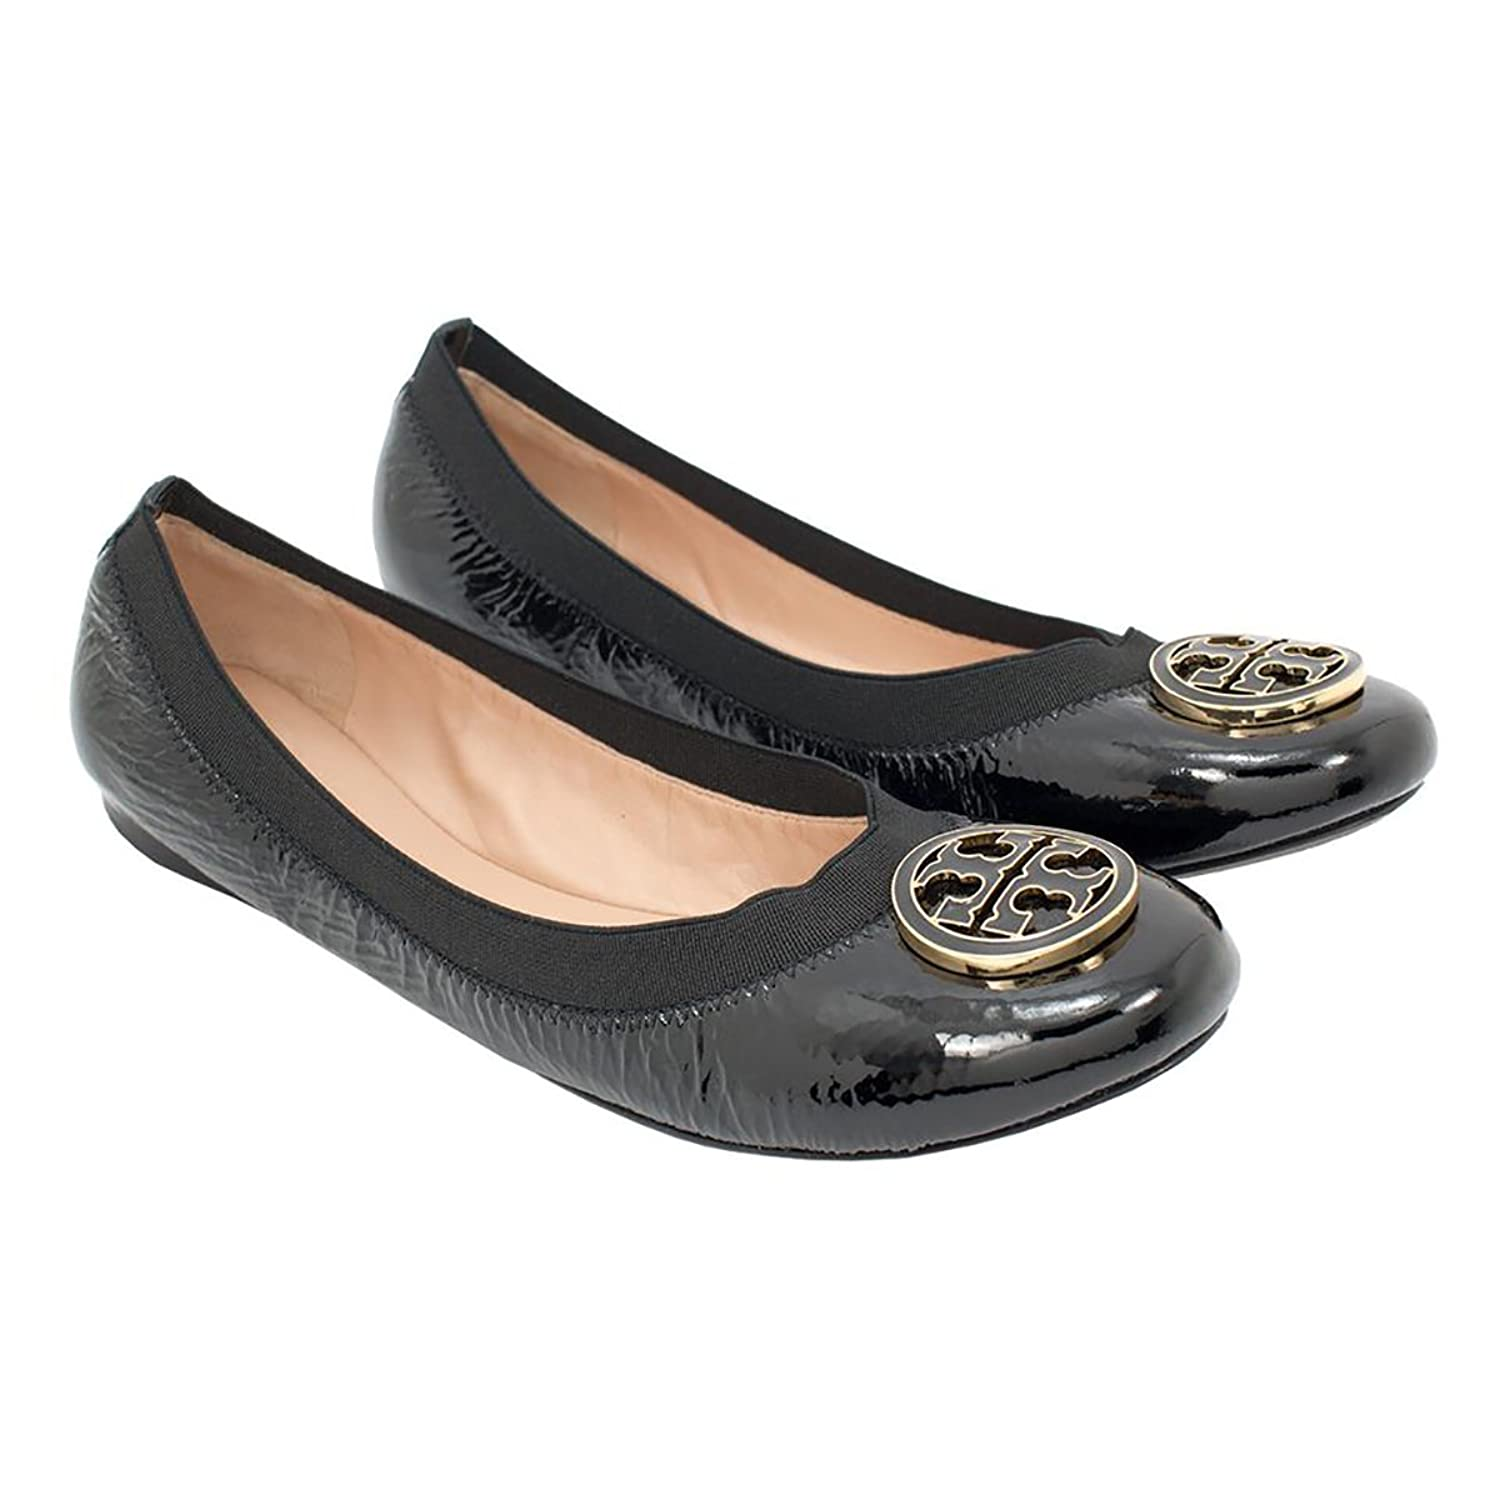 Tory Burch Shoes Flats Ballet Caroline PATENT Leather Elastic